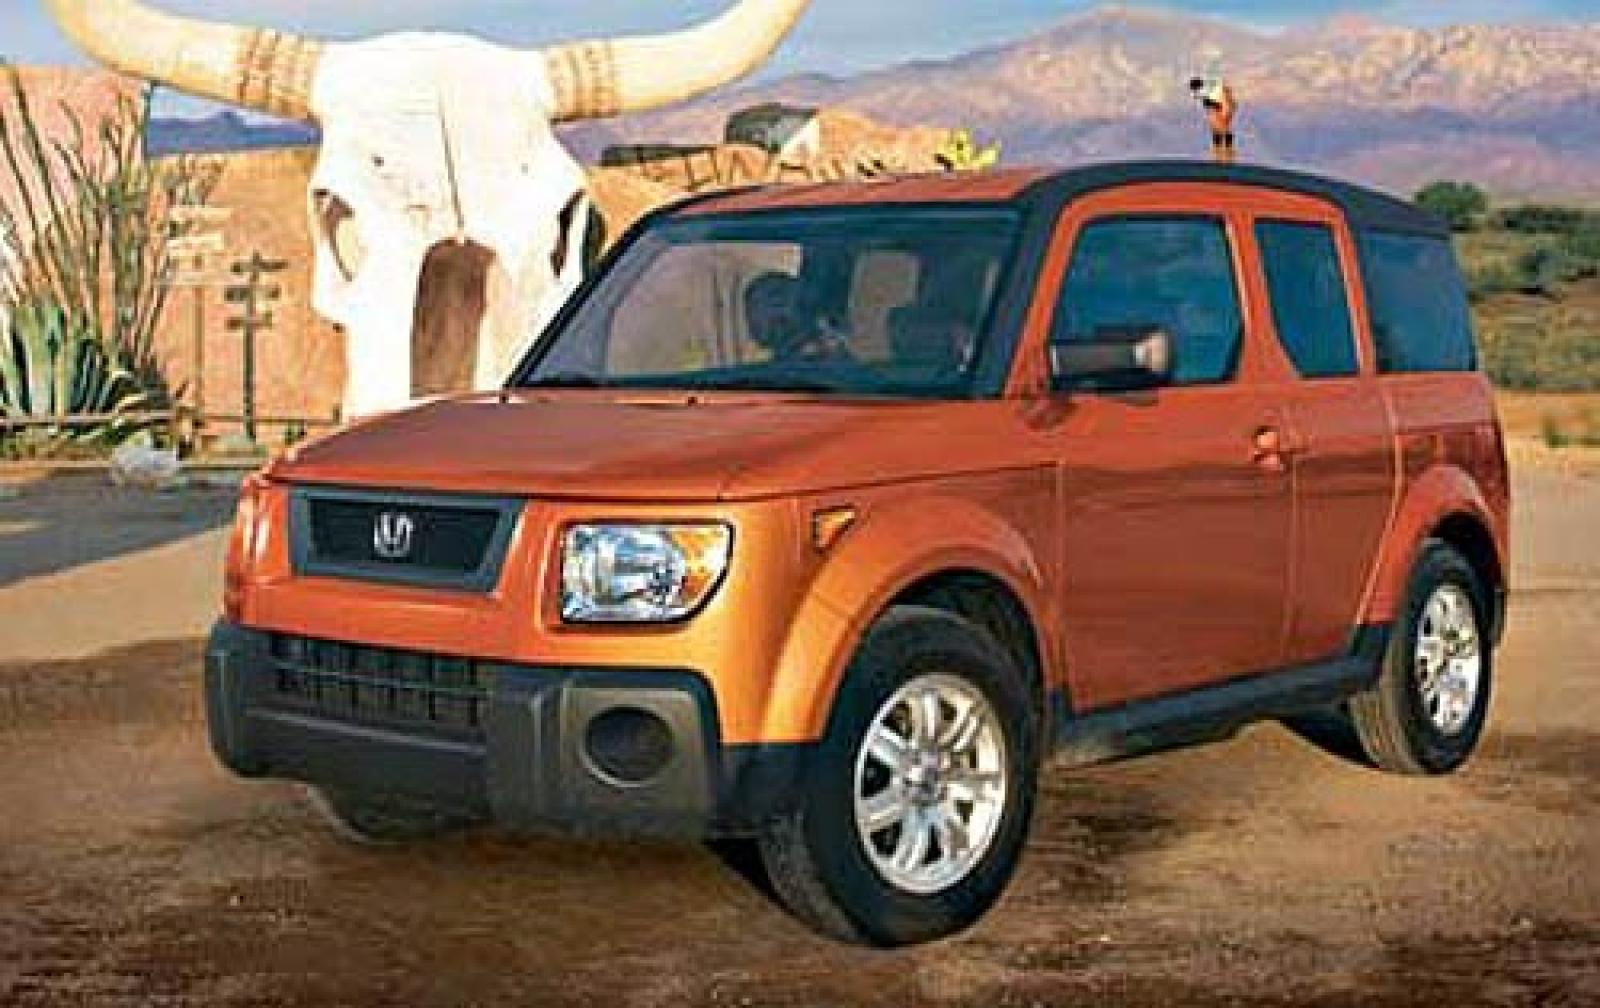 2006 honda element information and photos zombiedrive. Black Bedroom Furniture Sets. Home Design Ideas